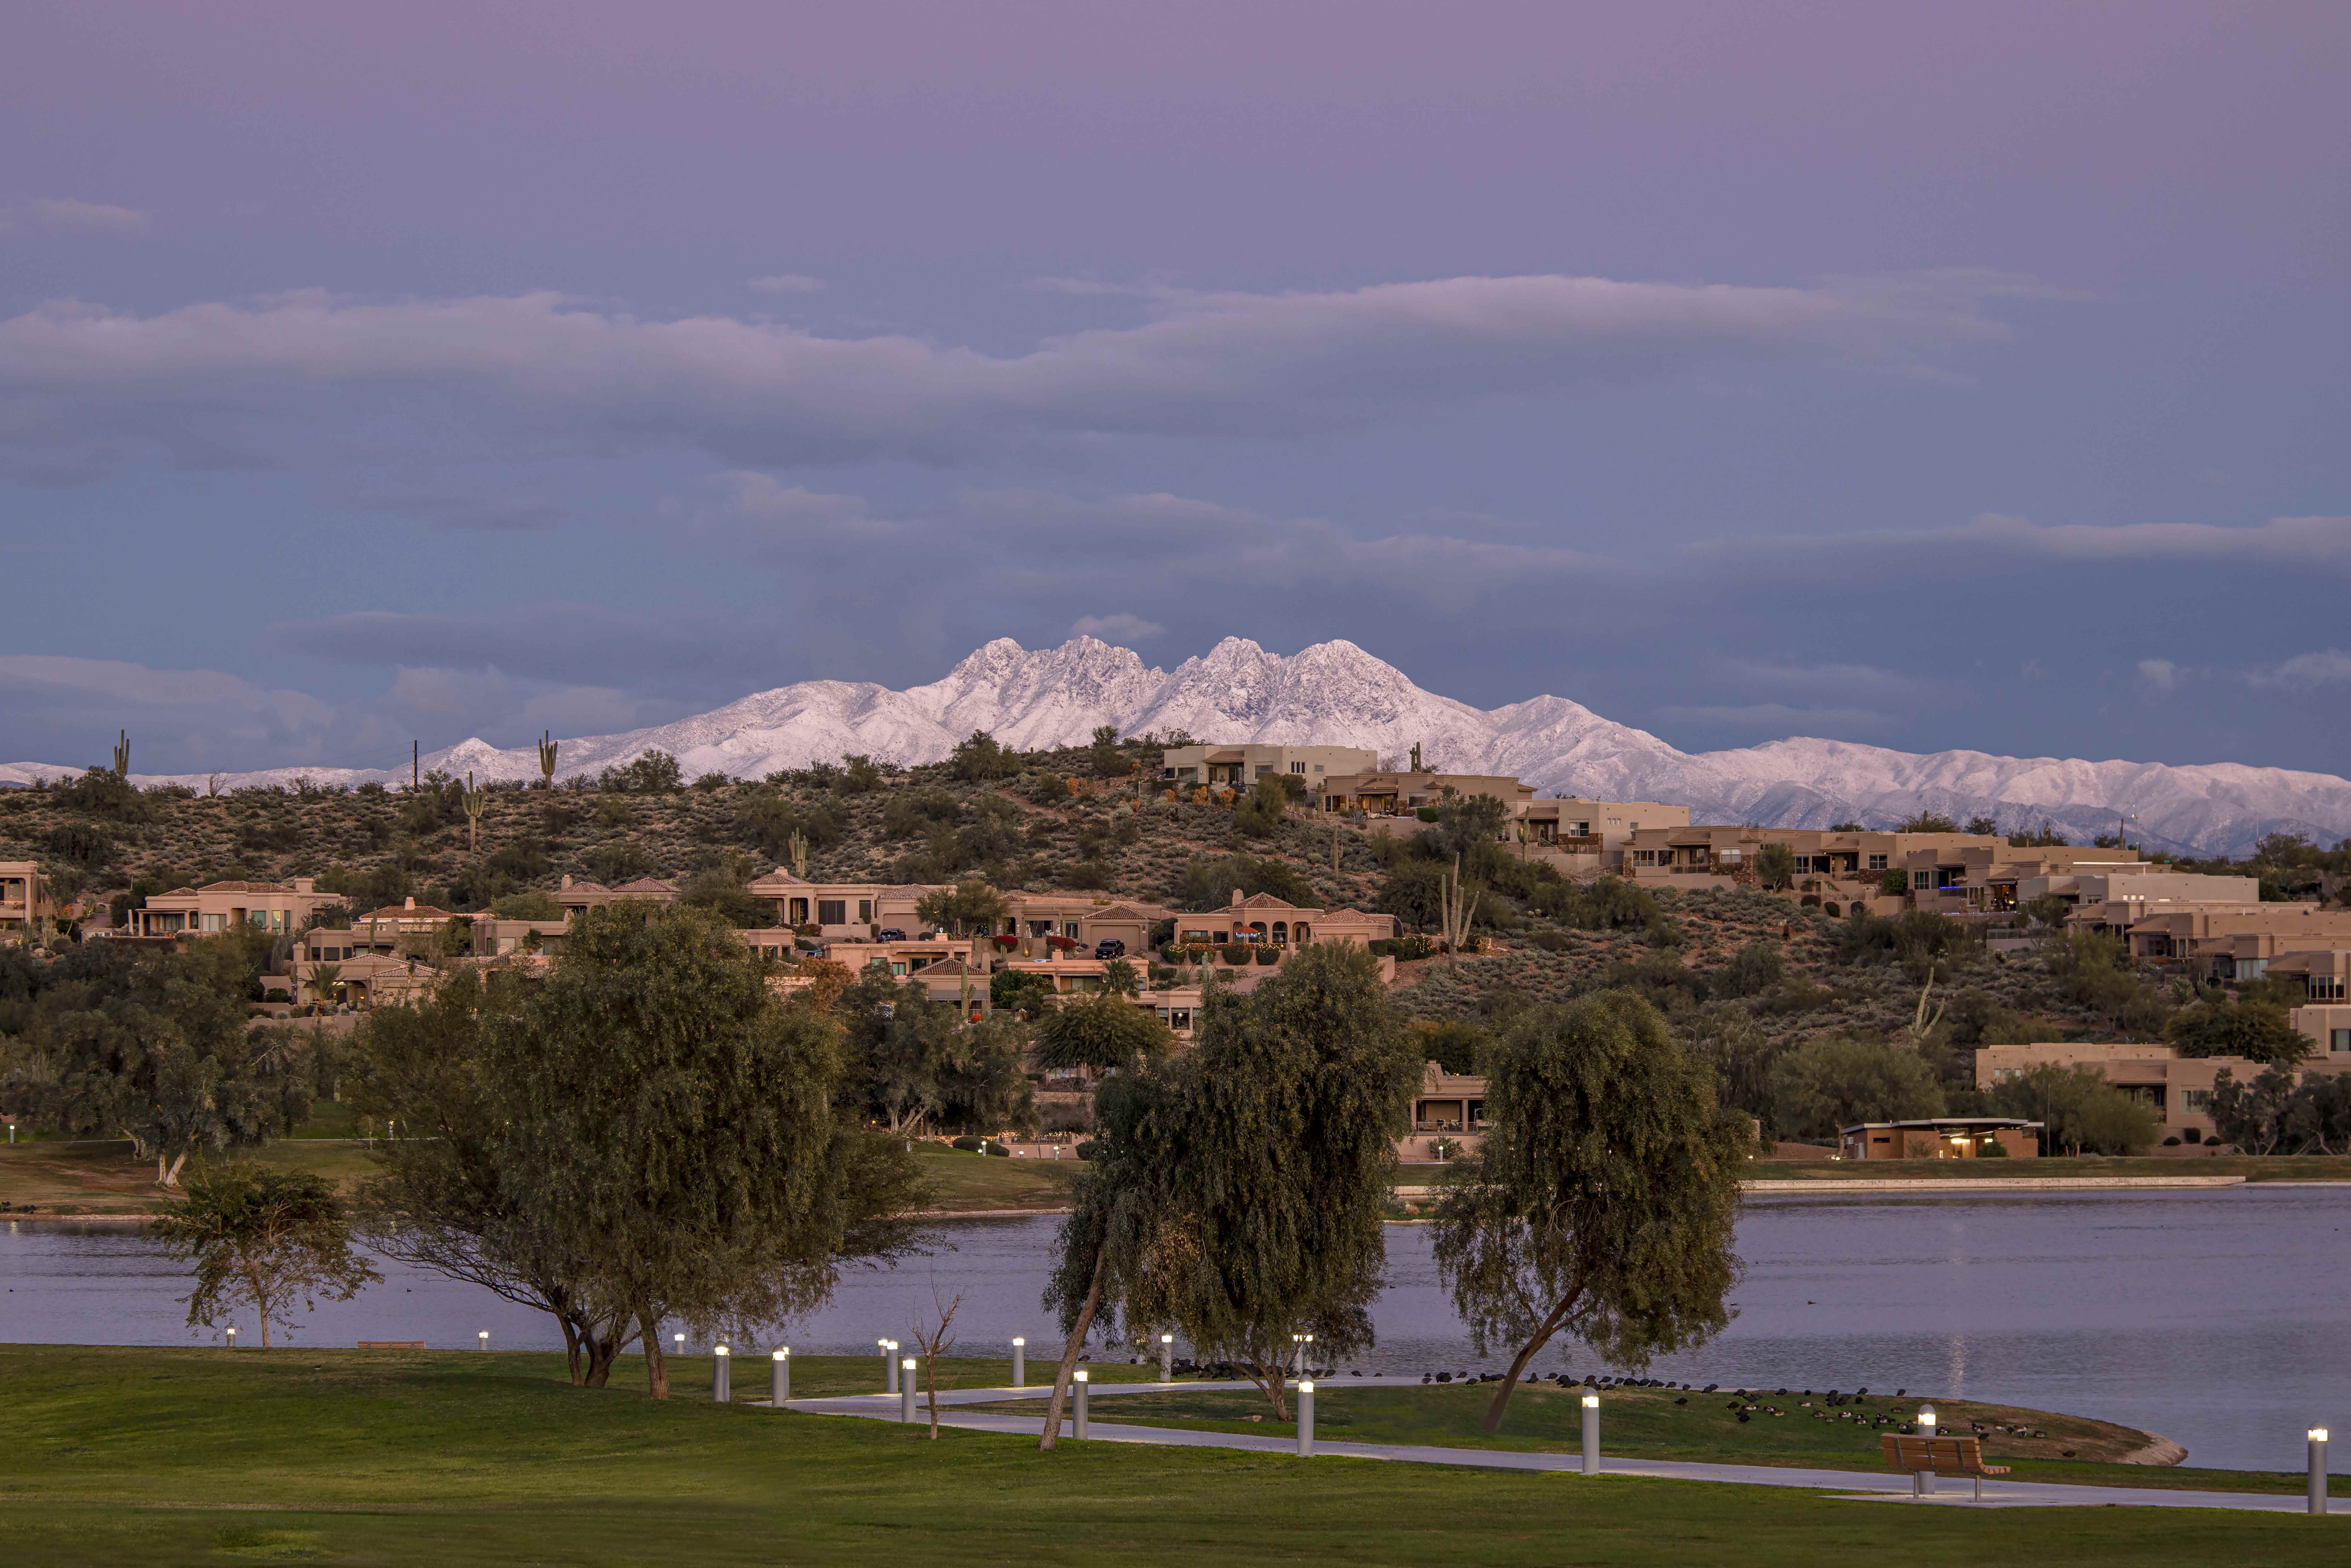 Snow on Four Peaks over Fountain Park